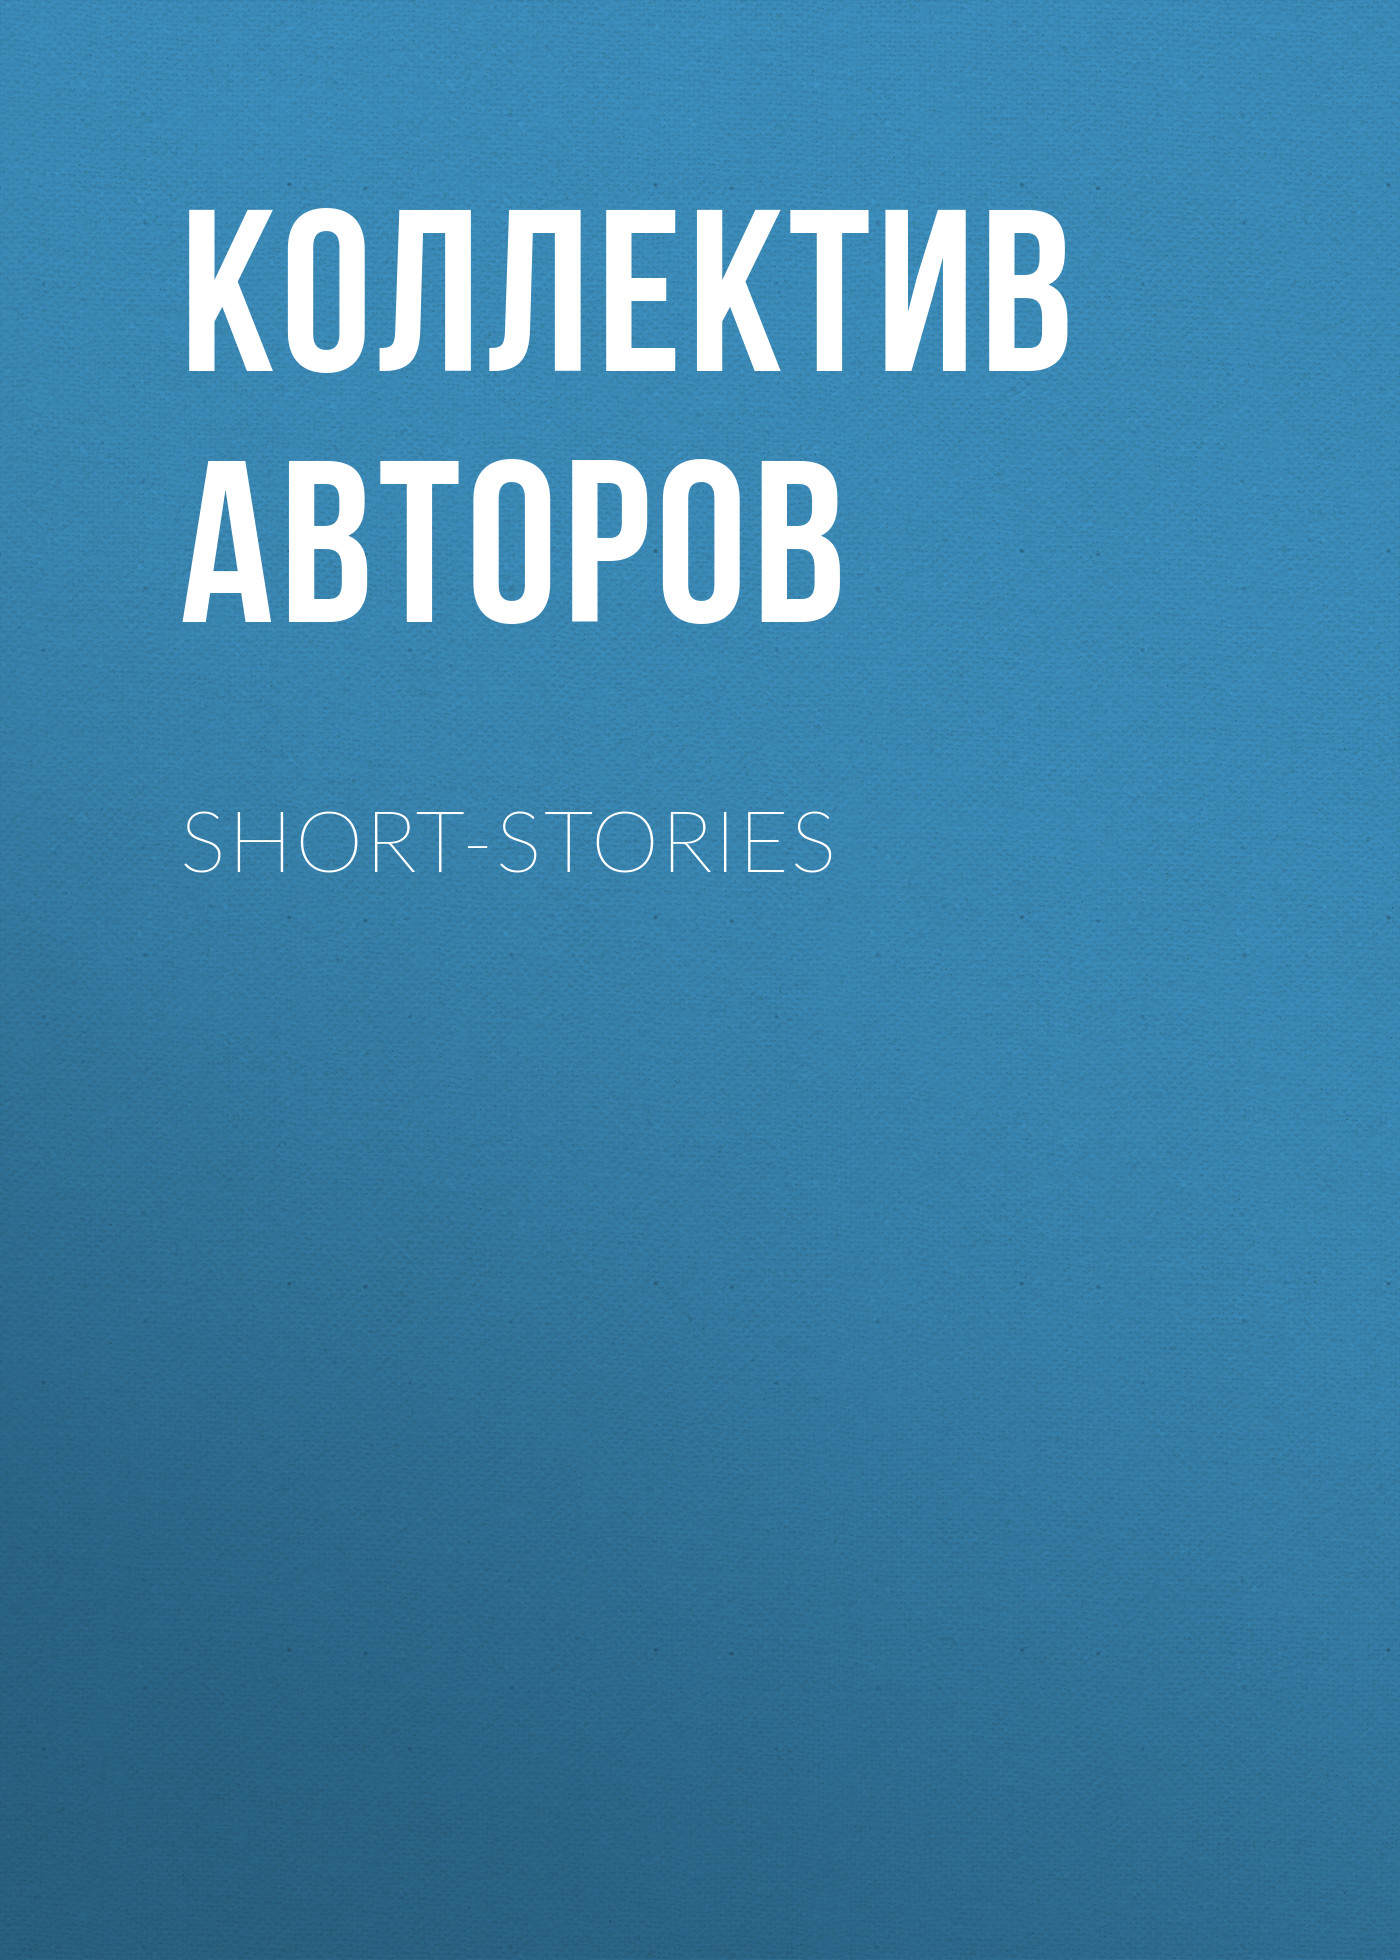 Коллектив авторов Short-Stories коллектив авторов wyeth s repository of sacred music